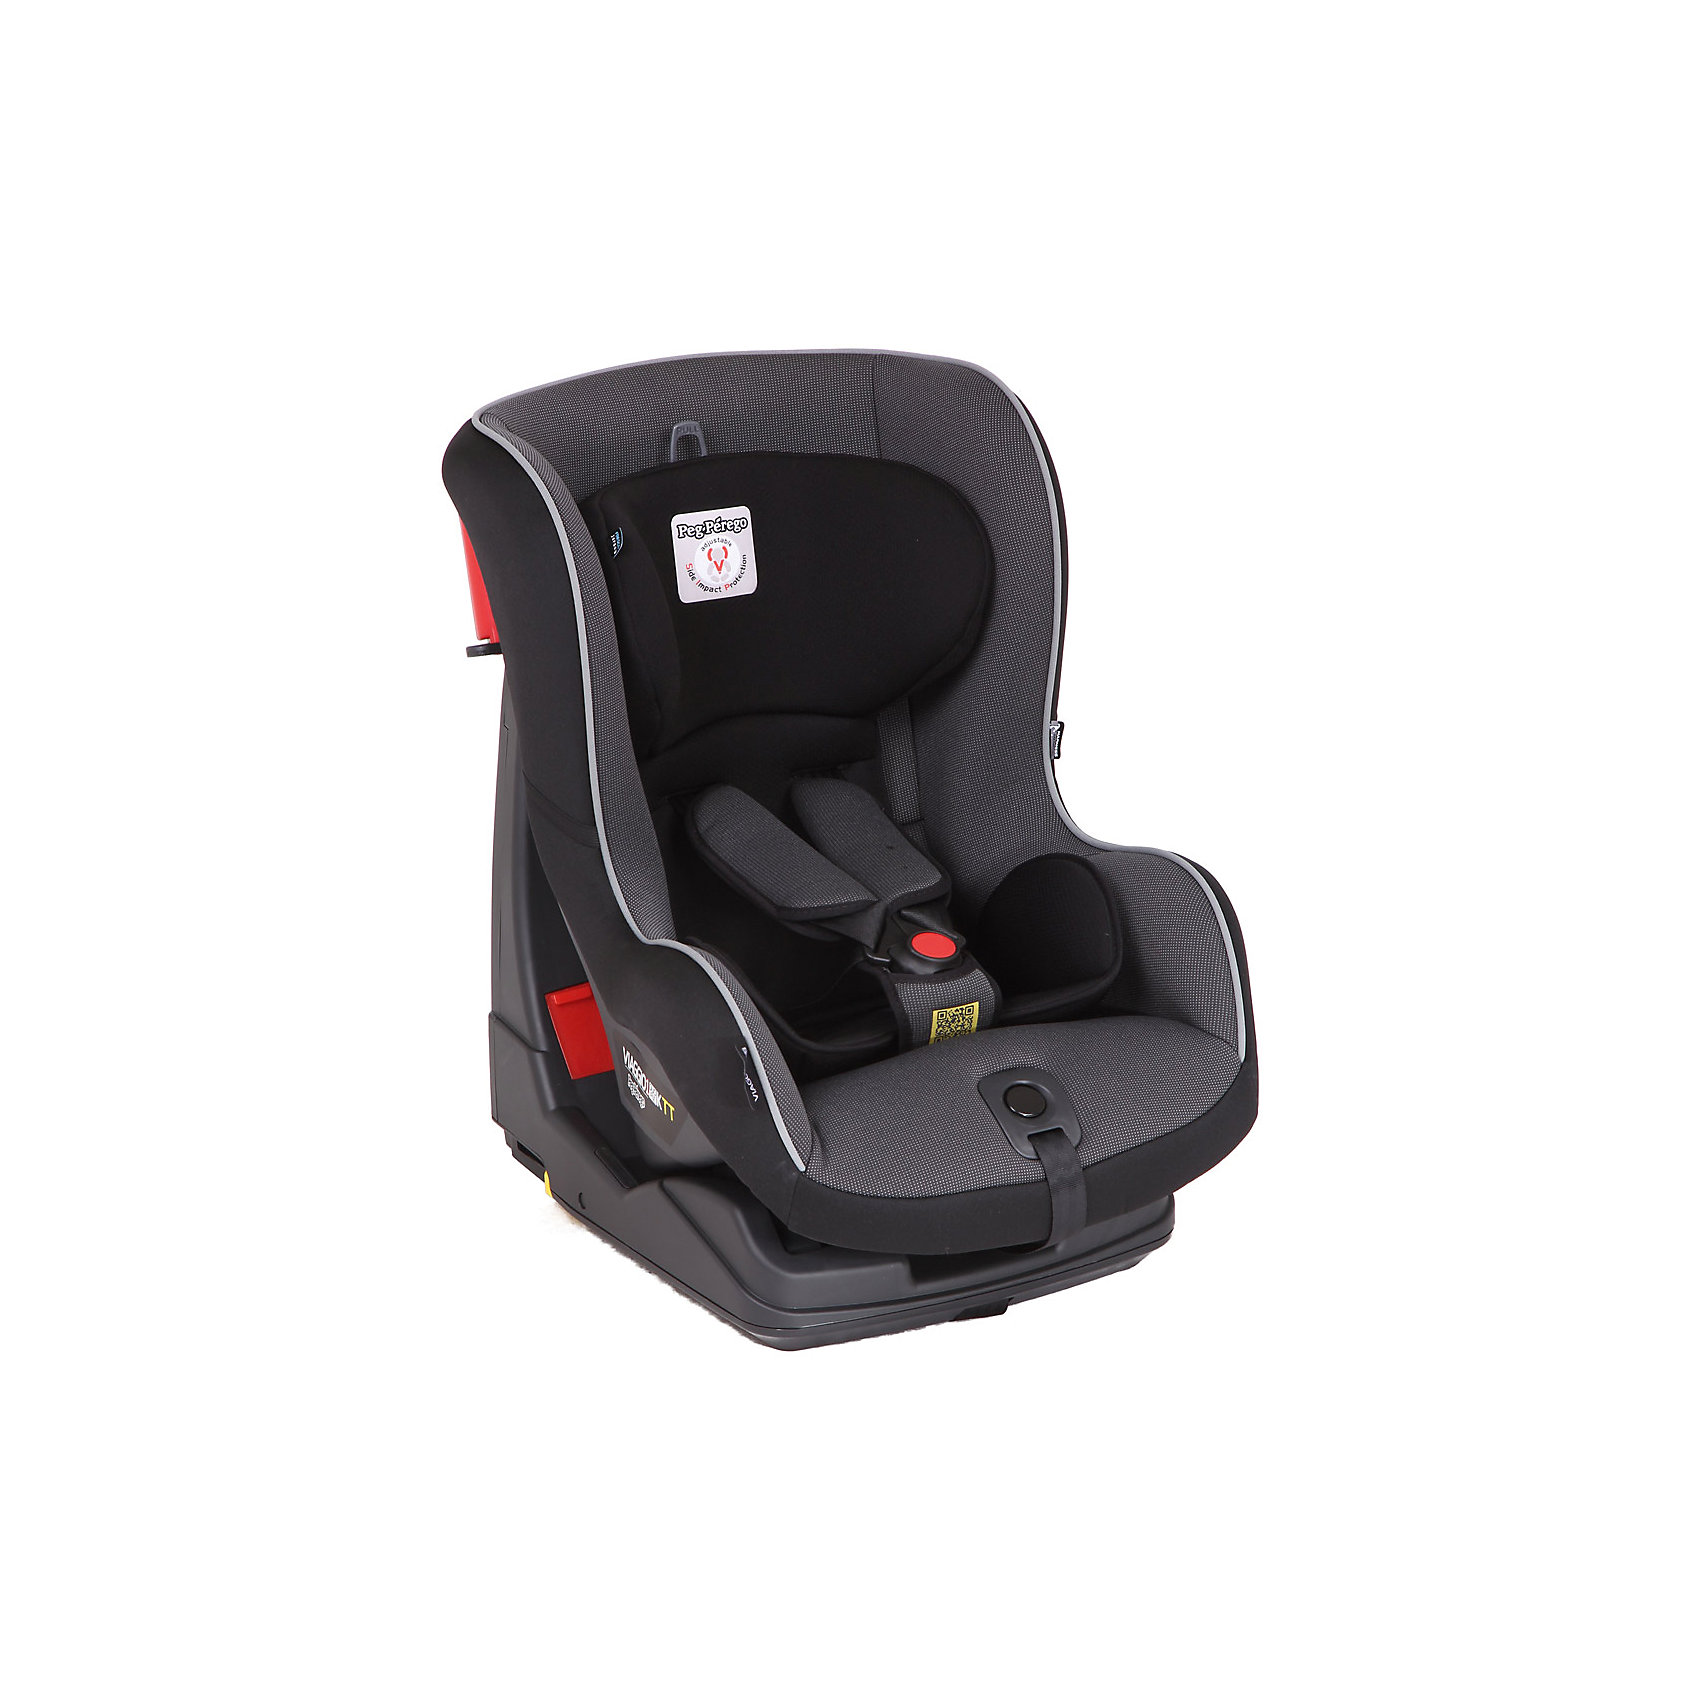 Автокресло Peg Perego Viaggio1 Duo-Fix TT, 9-18 кг, Black